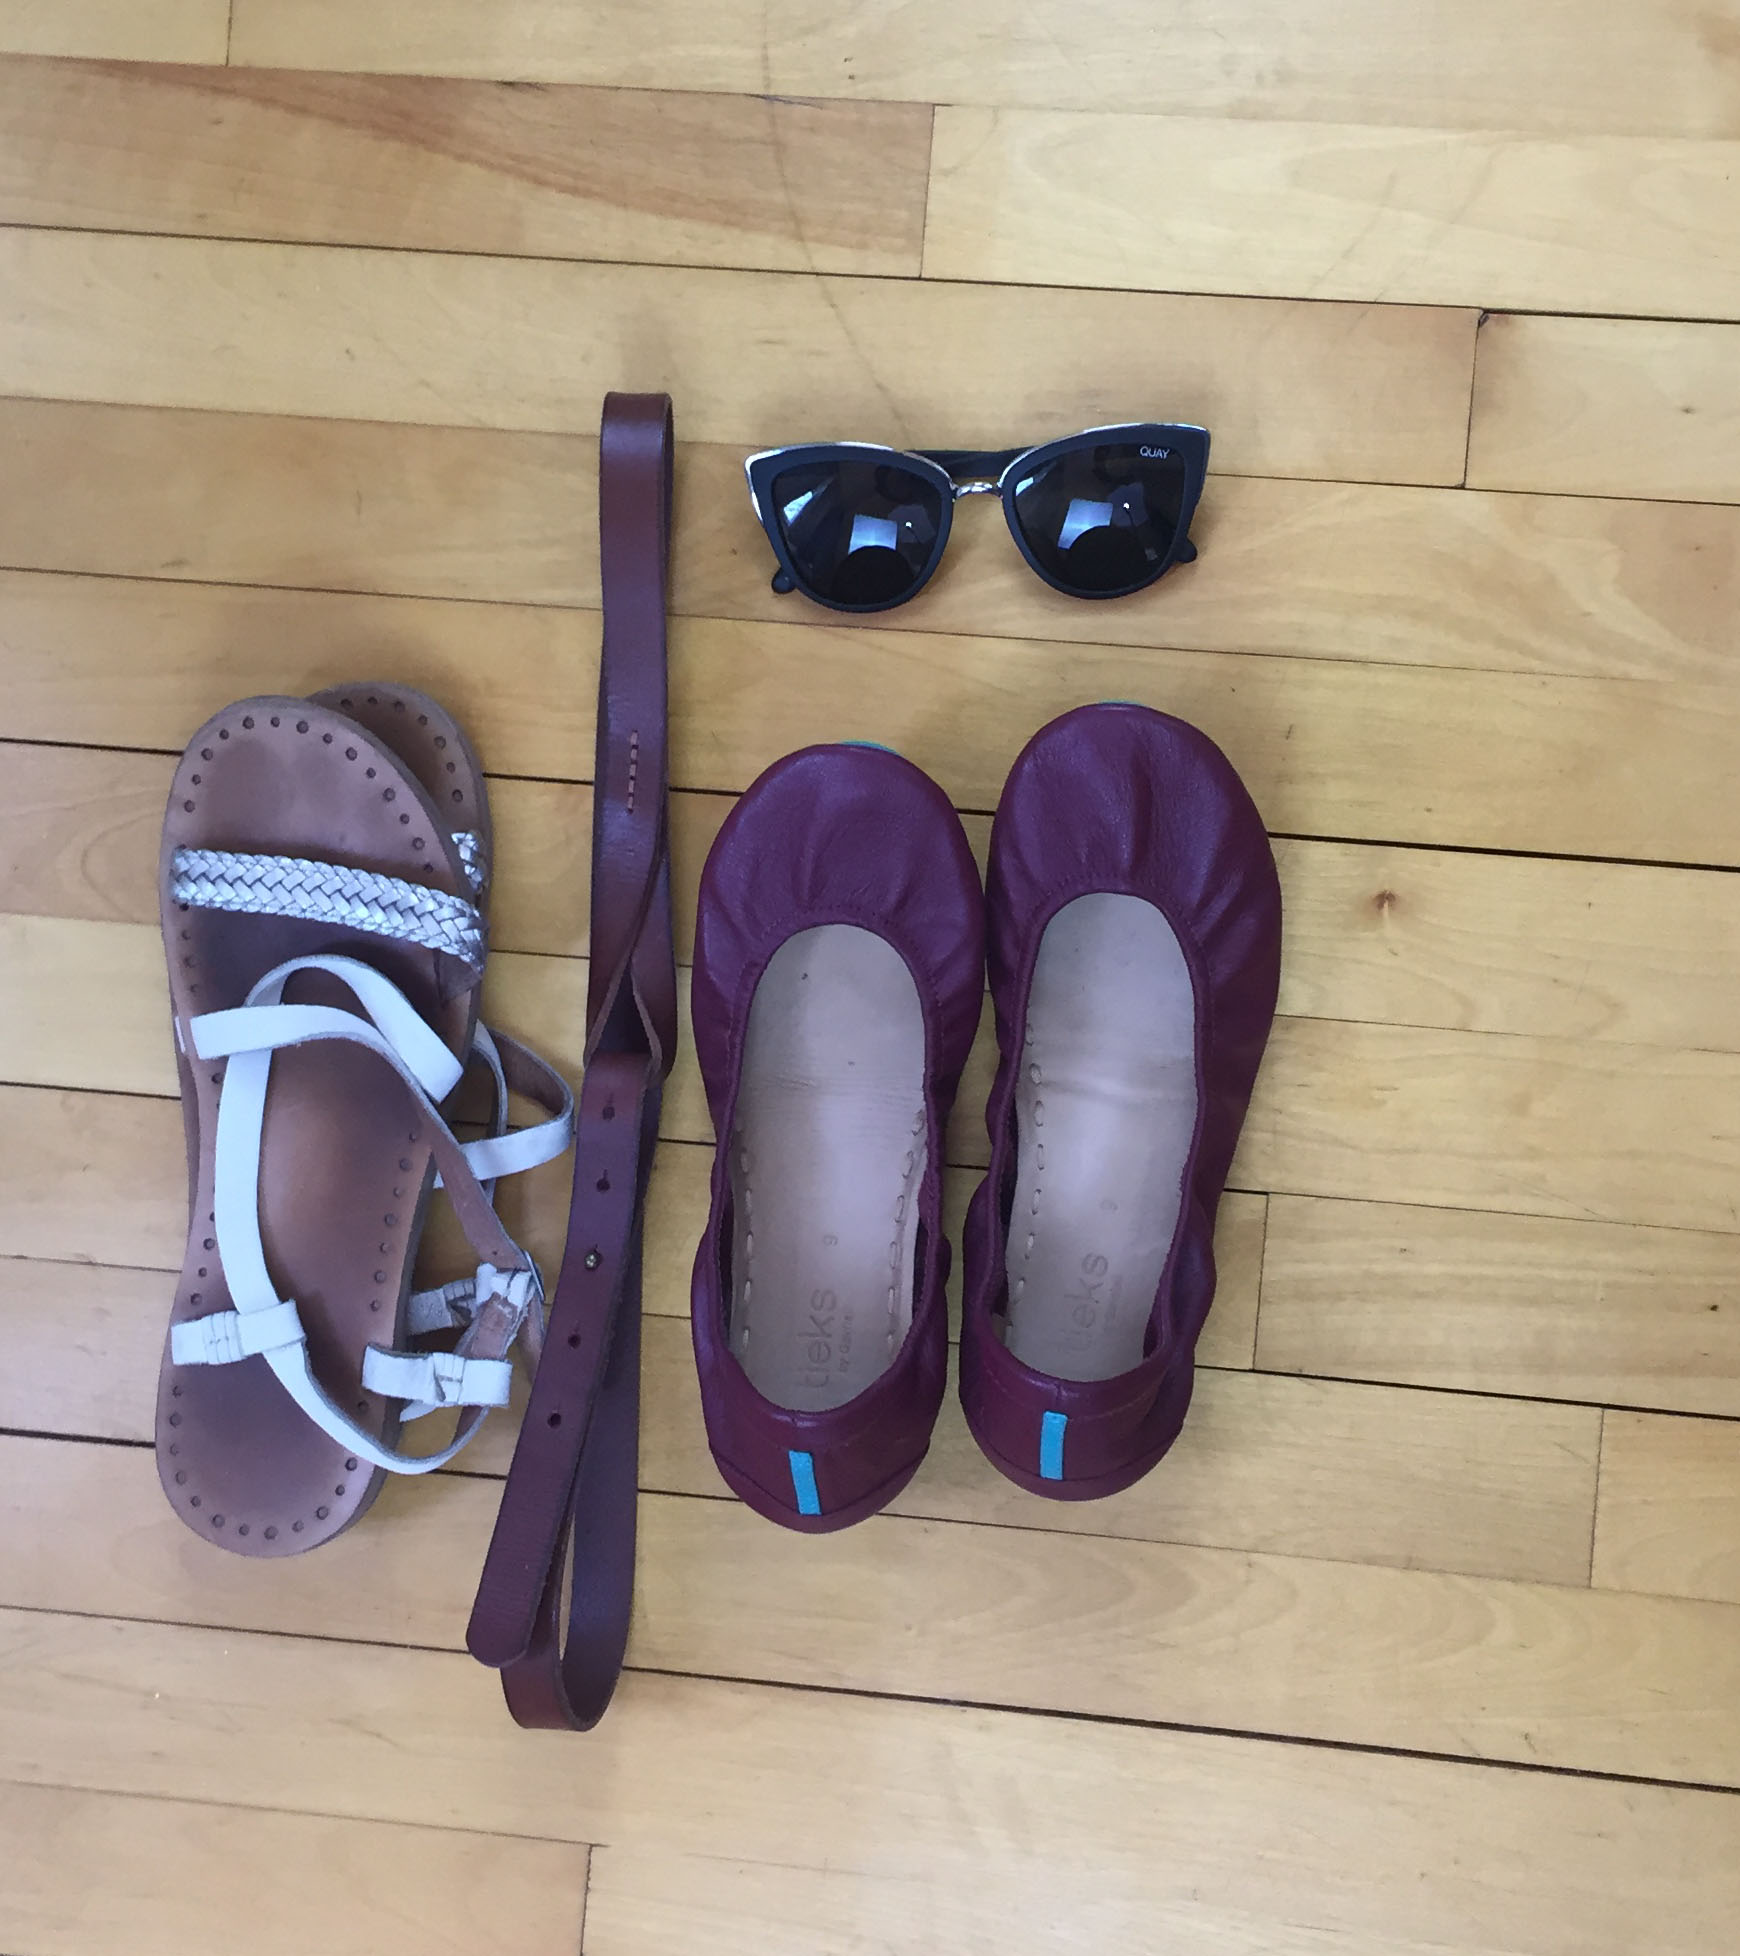 Shoes and Accessories - 1 week in a Carry-On | Laurel and Iron